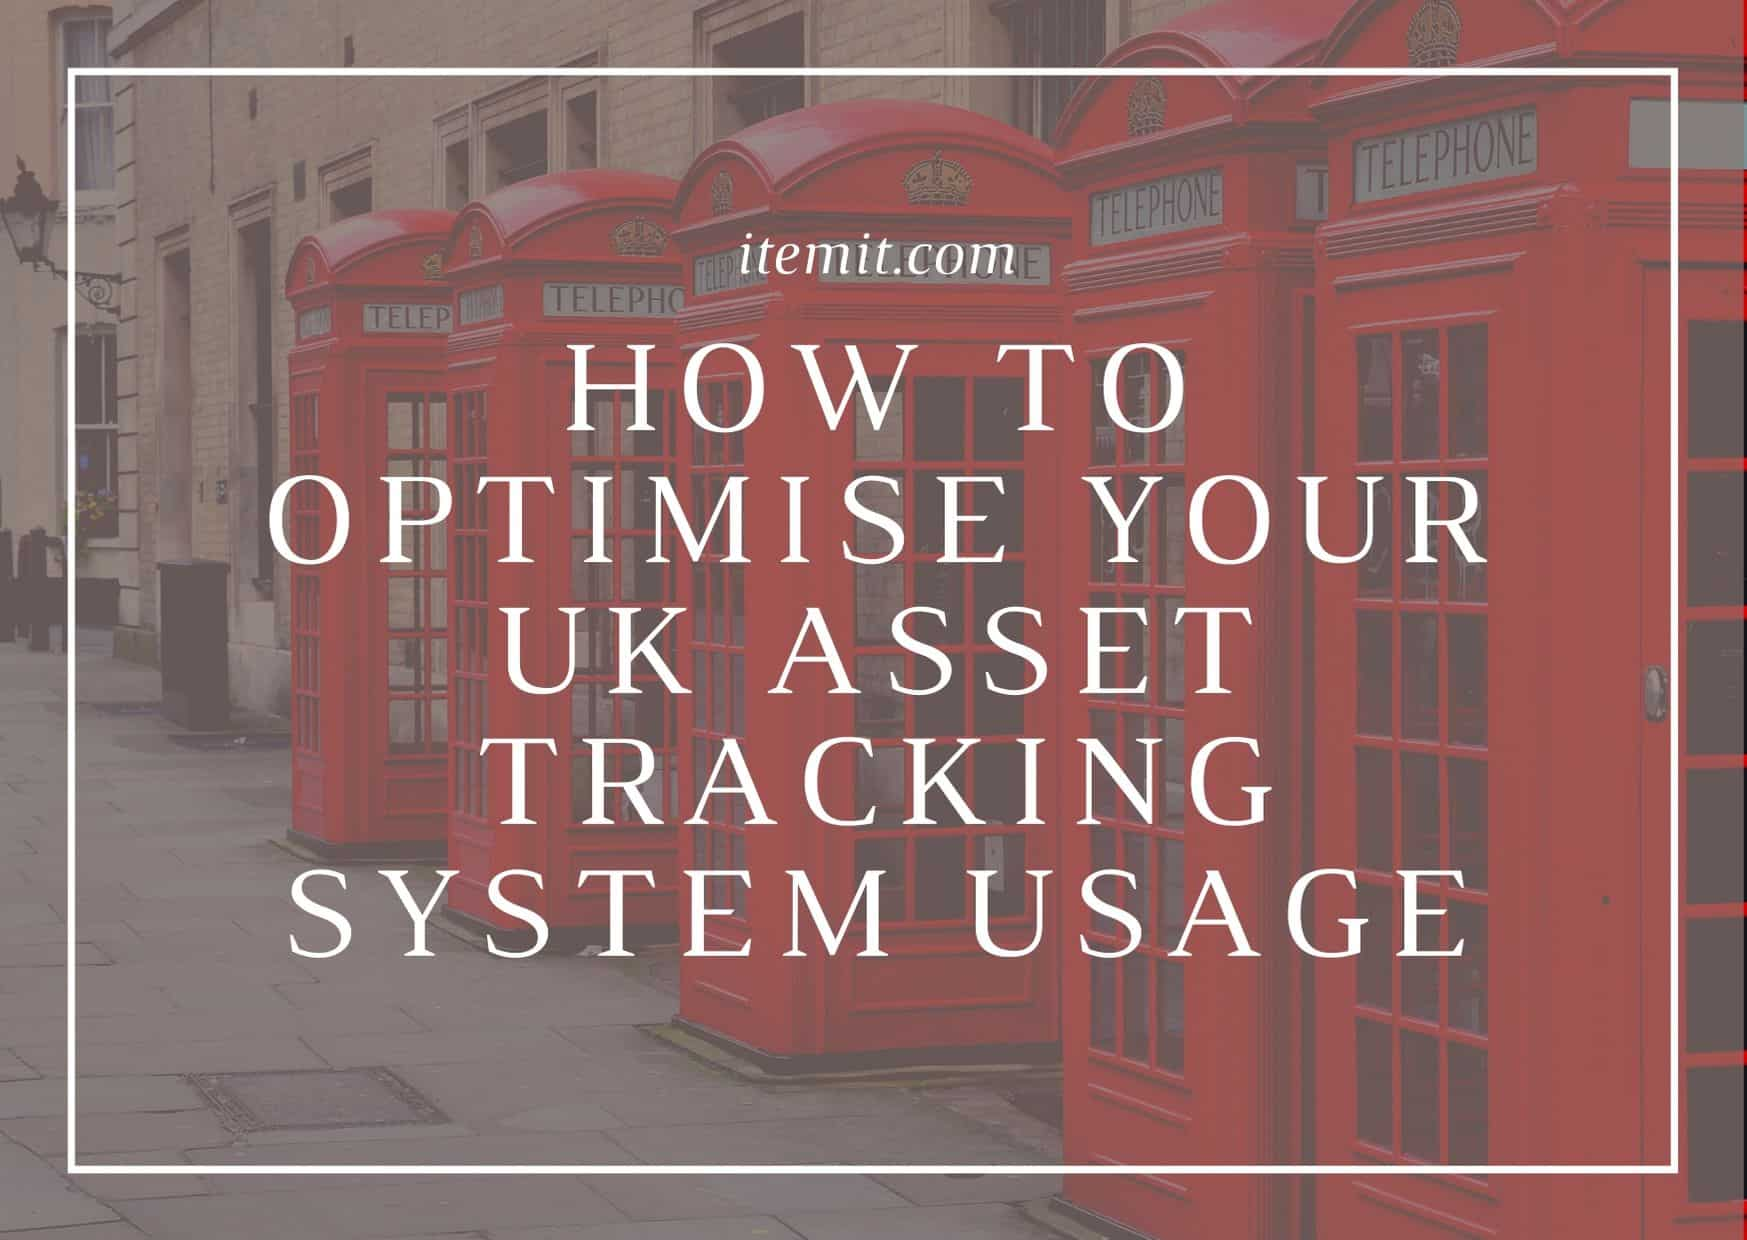 How to Optimise Your UK Asset Tracking System Usage